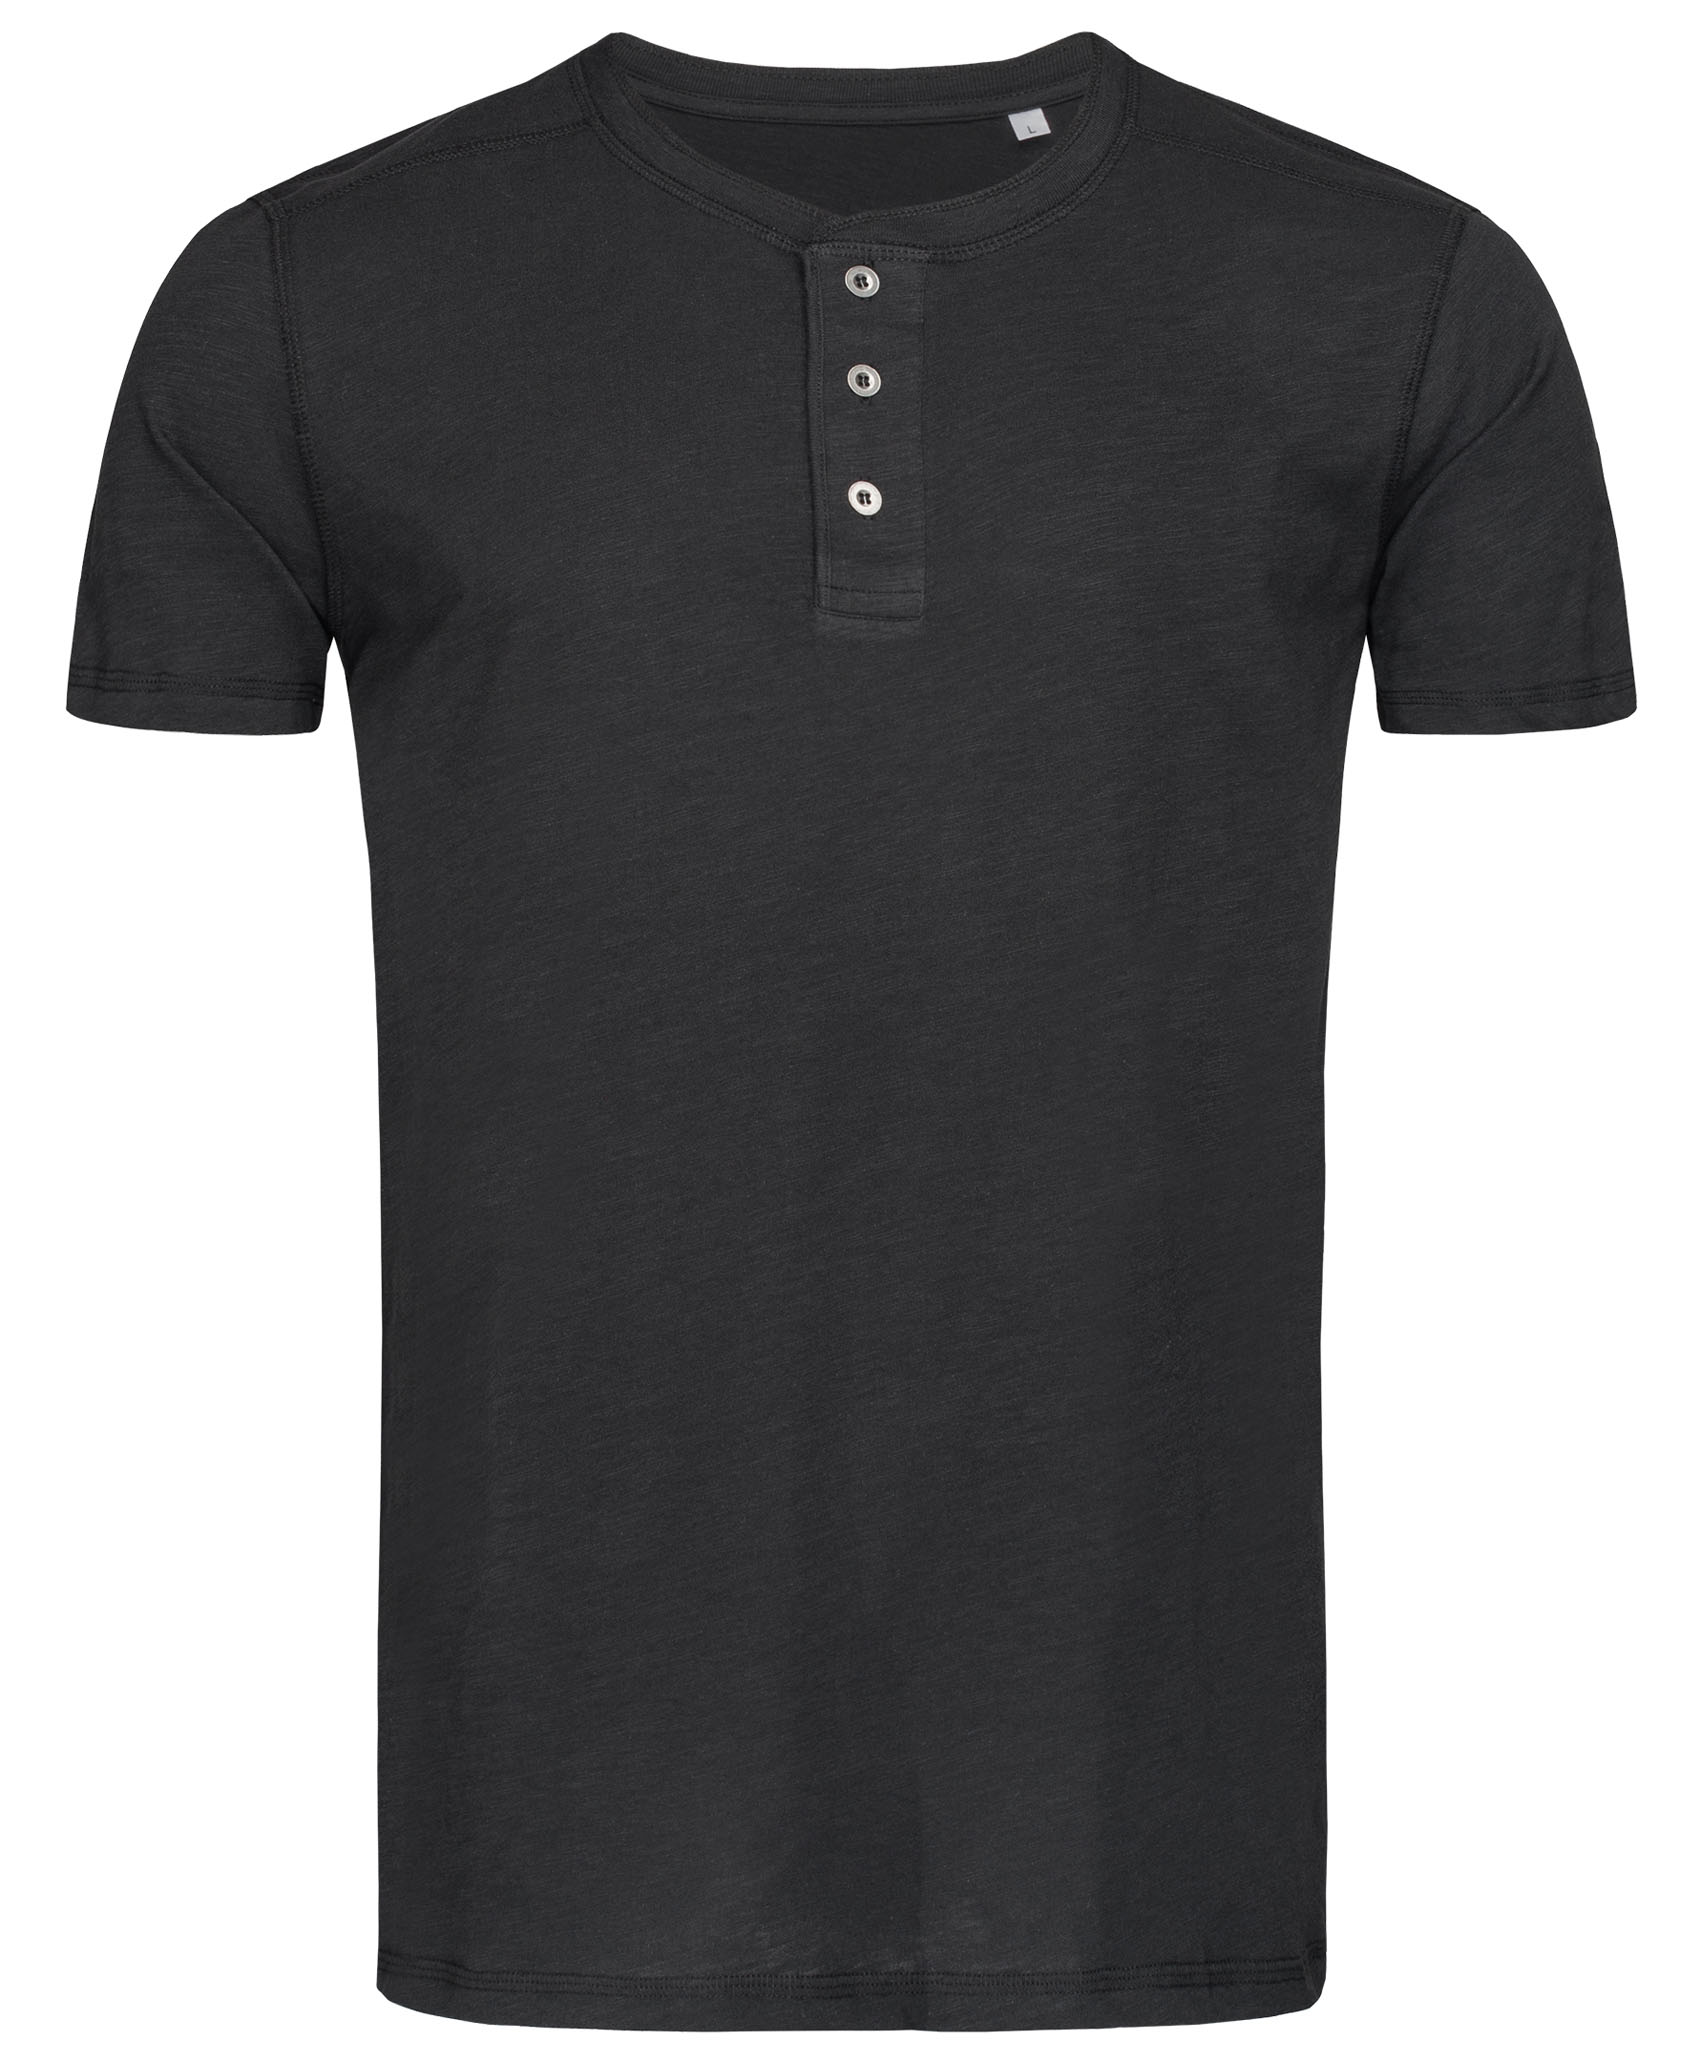 Stedman T-shirt Short Sleeve Henley Shawn for him